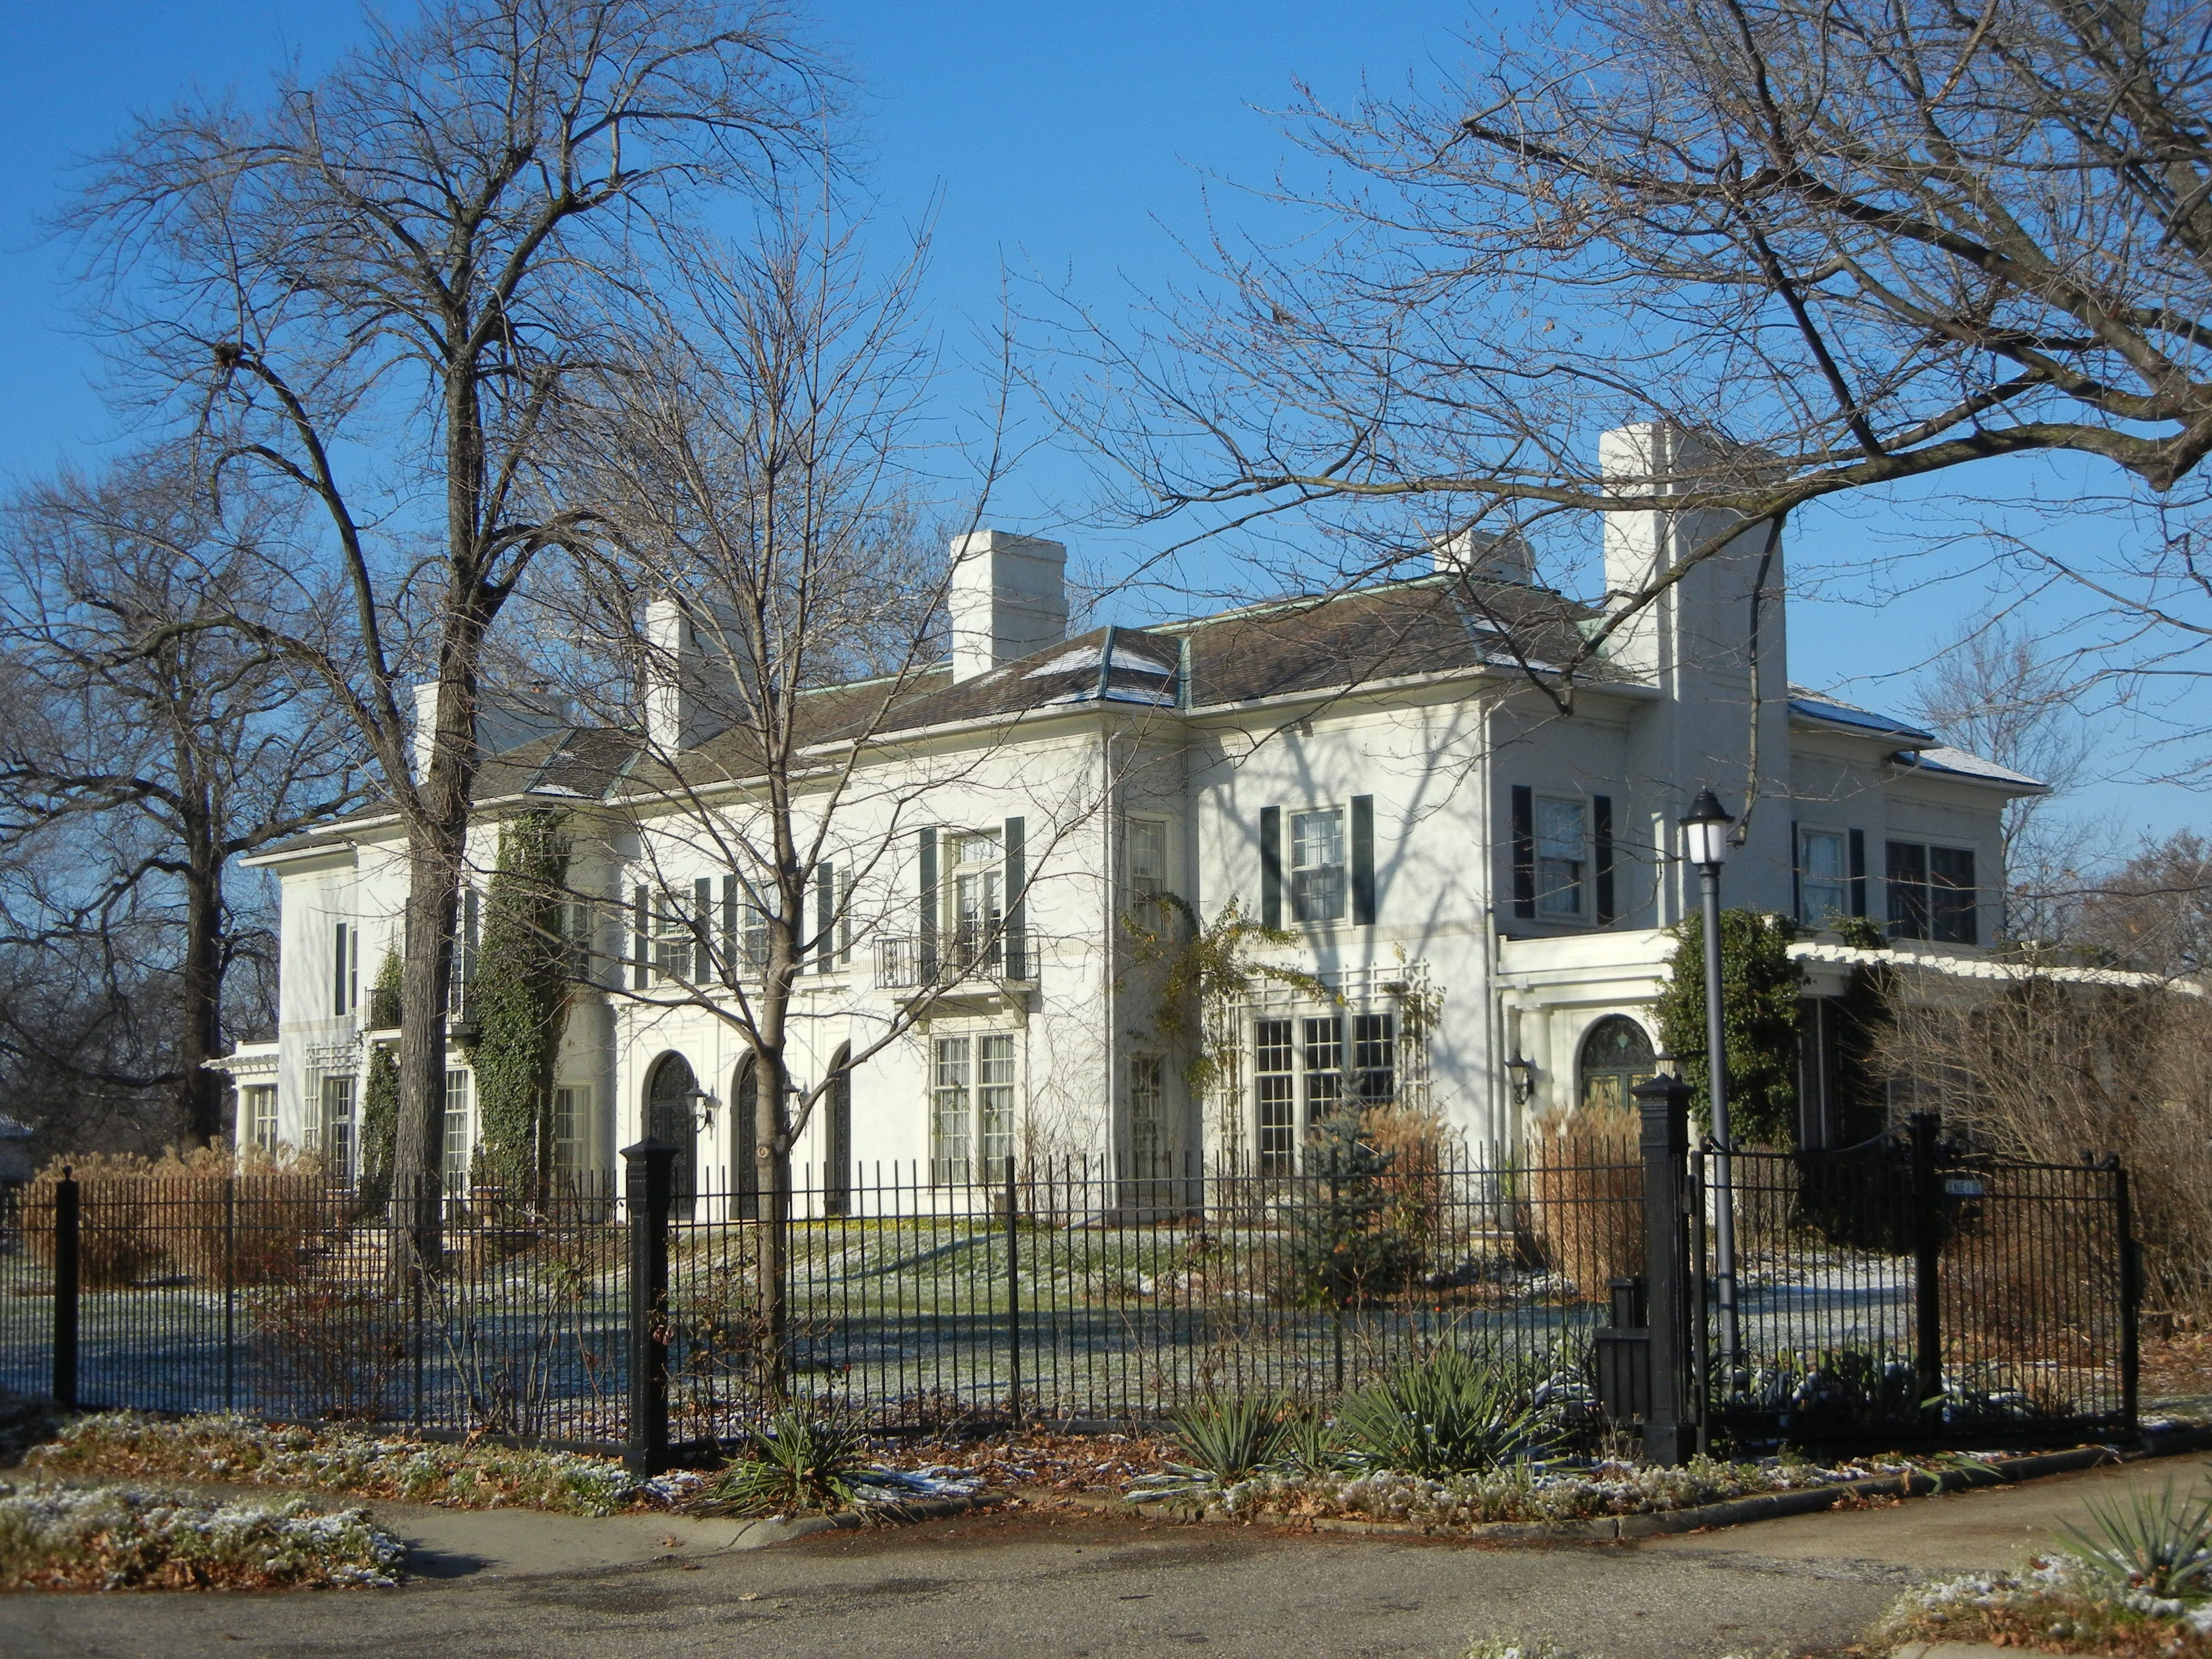 Mansion in Detroit once owned by S. S. Kresge, (the Five and Dime ...